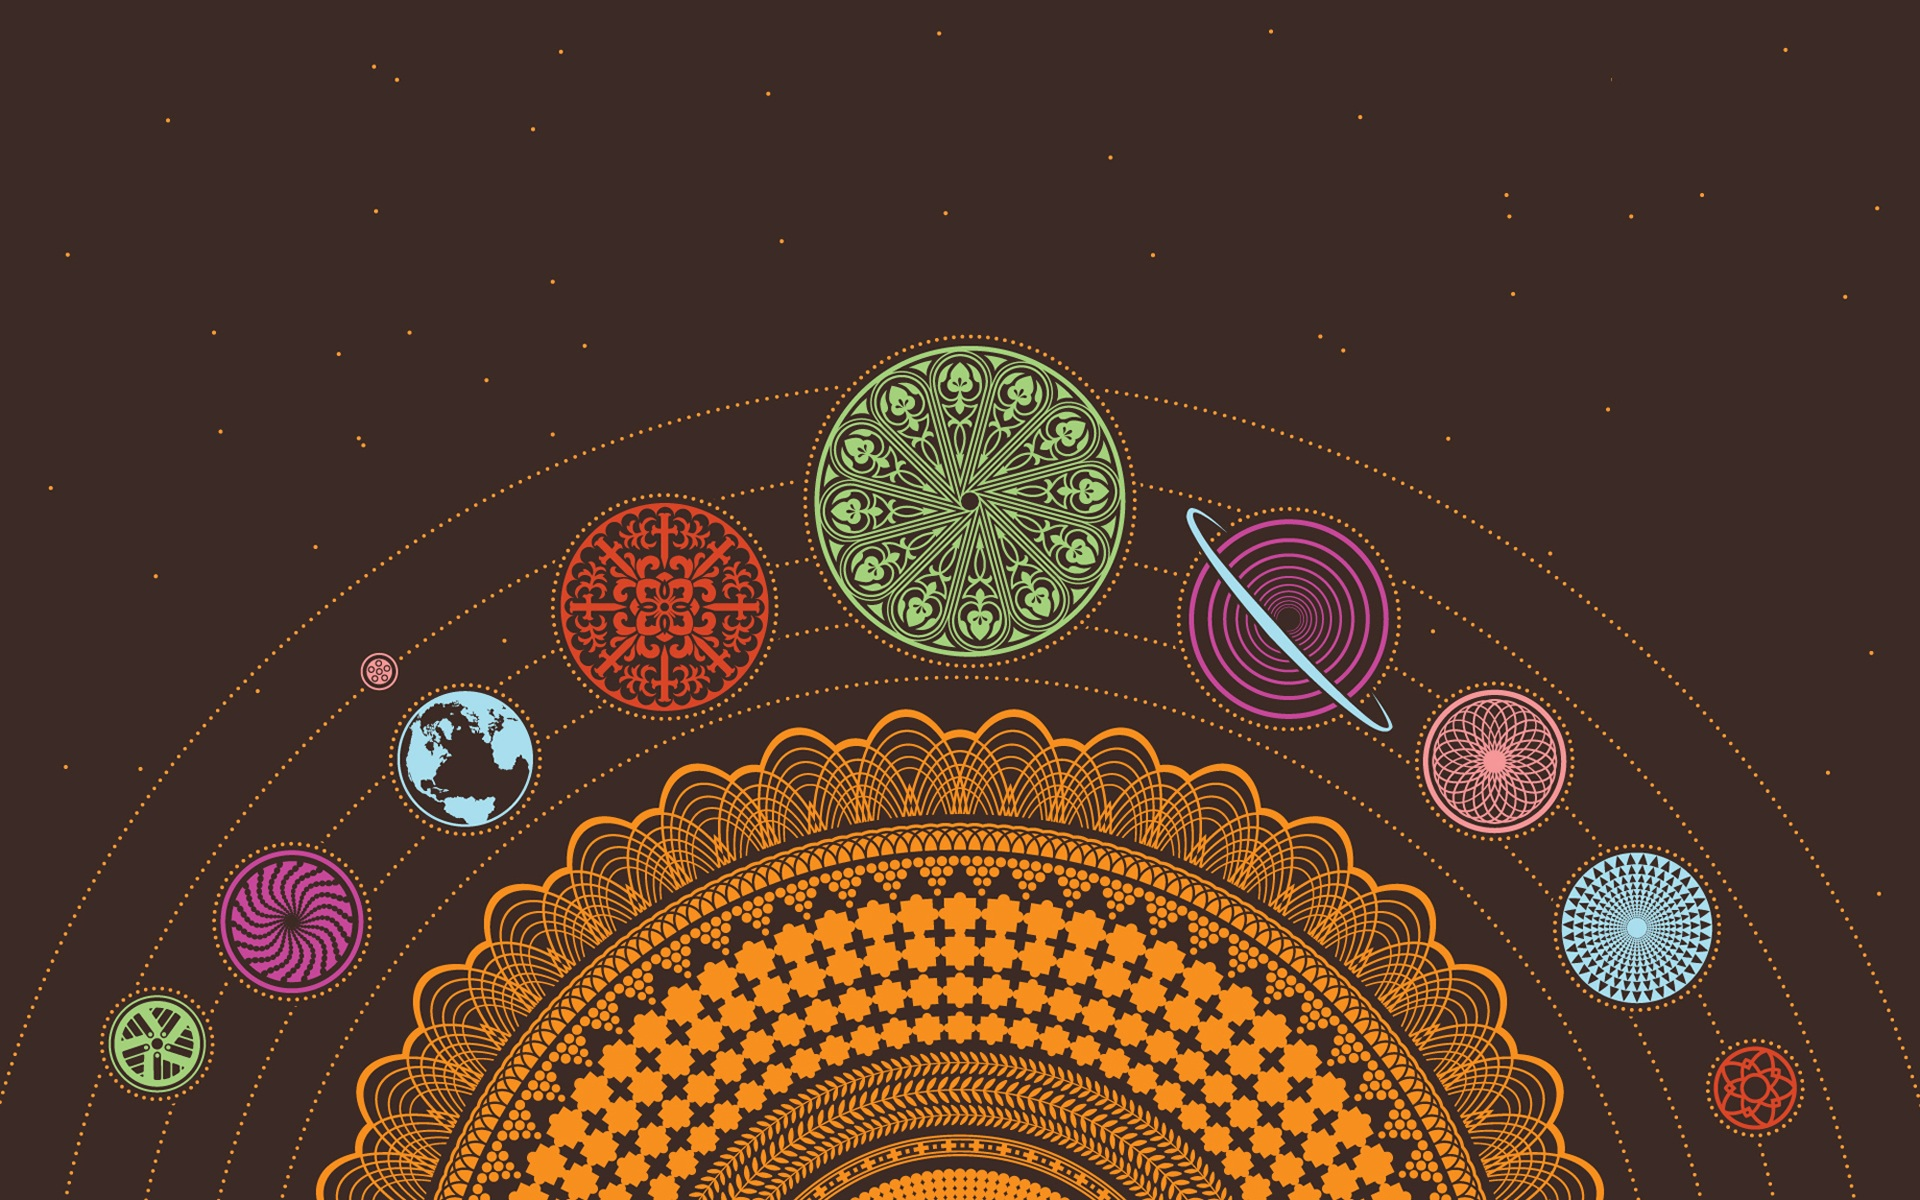 planets earth psychedelic scheme chakra esoteric wallpaper background 1920x1200